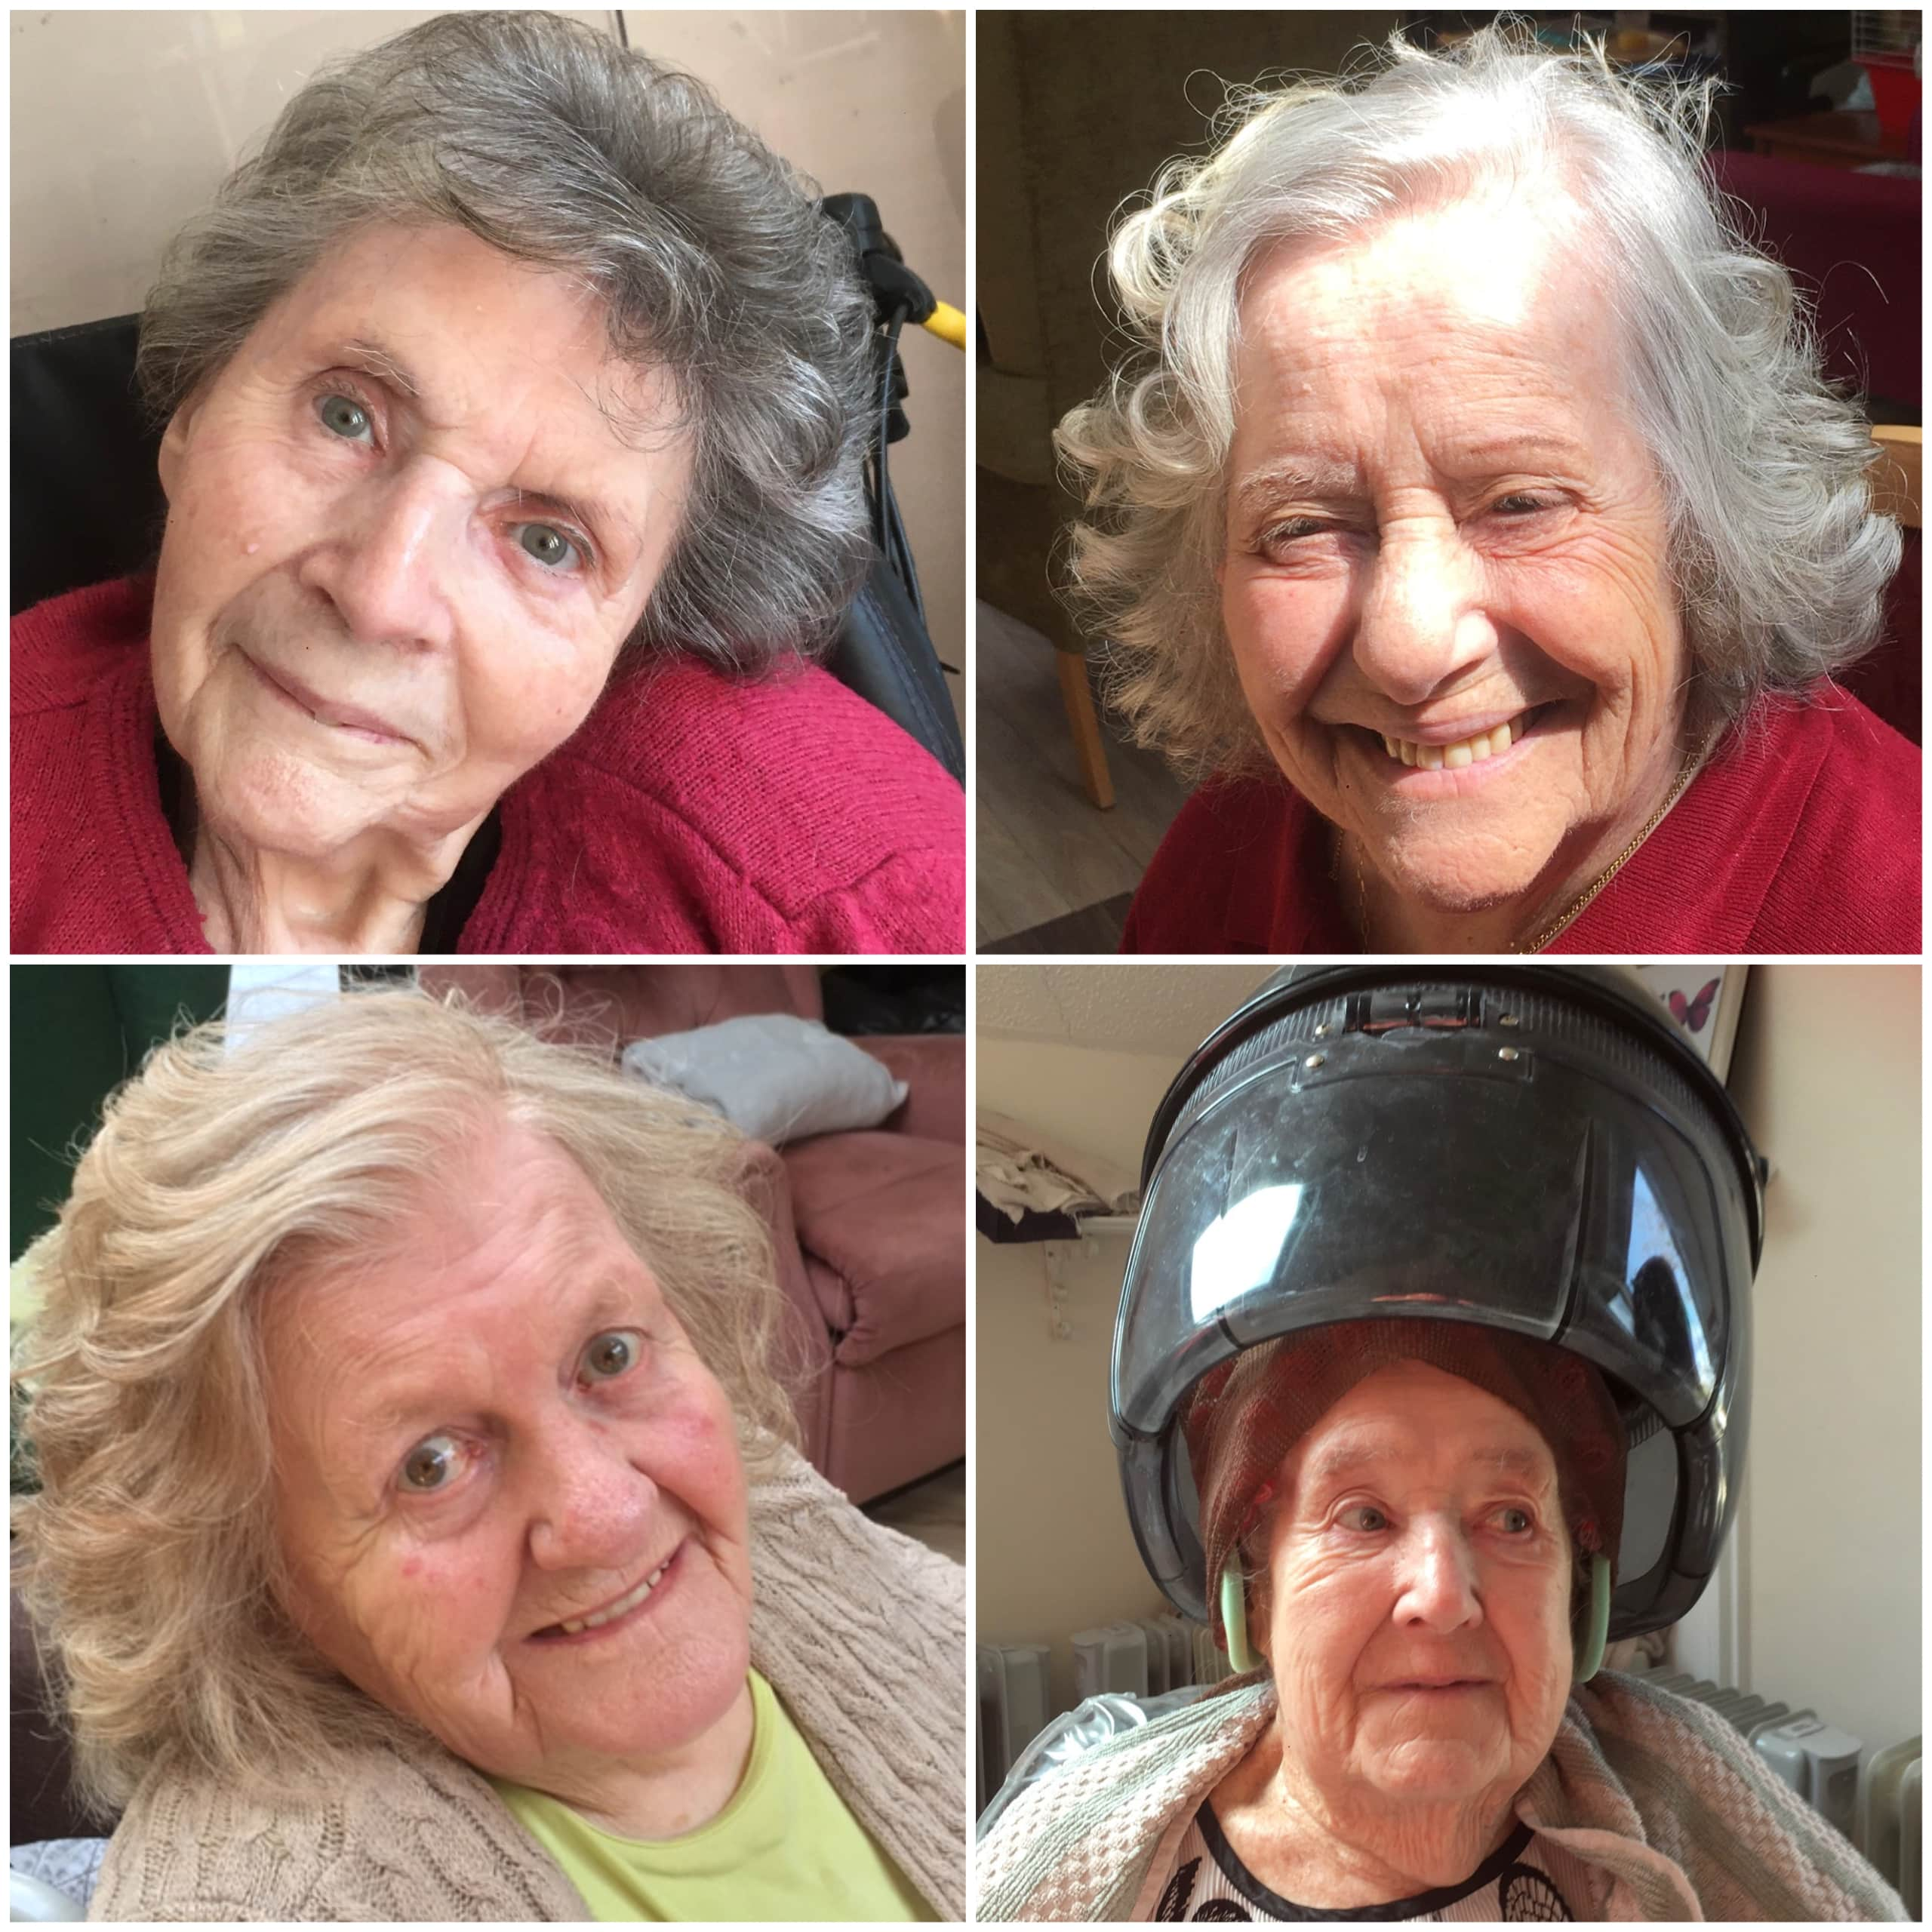 Residents at Epsom-based care home Linden House have their first appointments with the hairdresser for 12 months in the in-house hair salon.